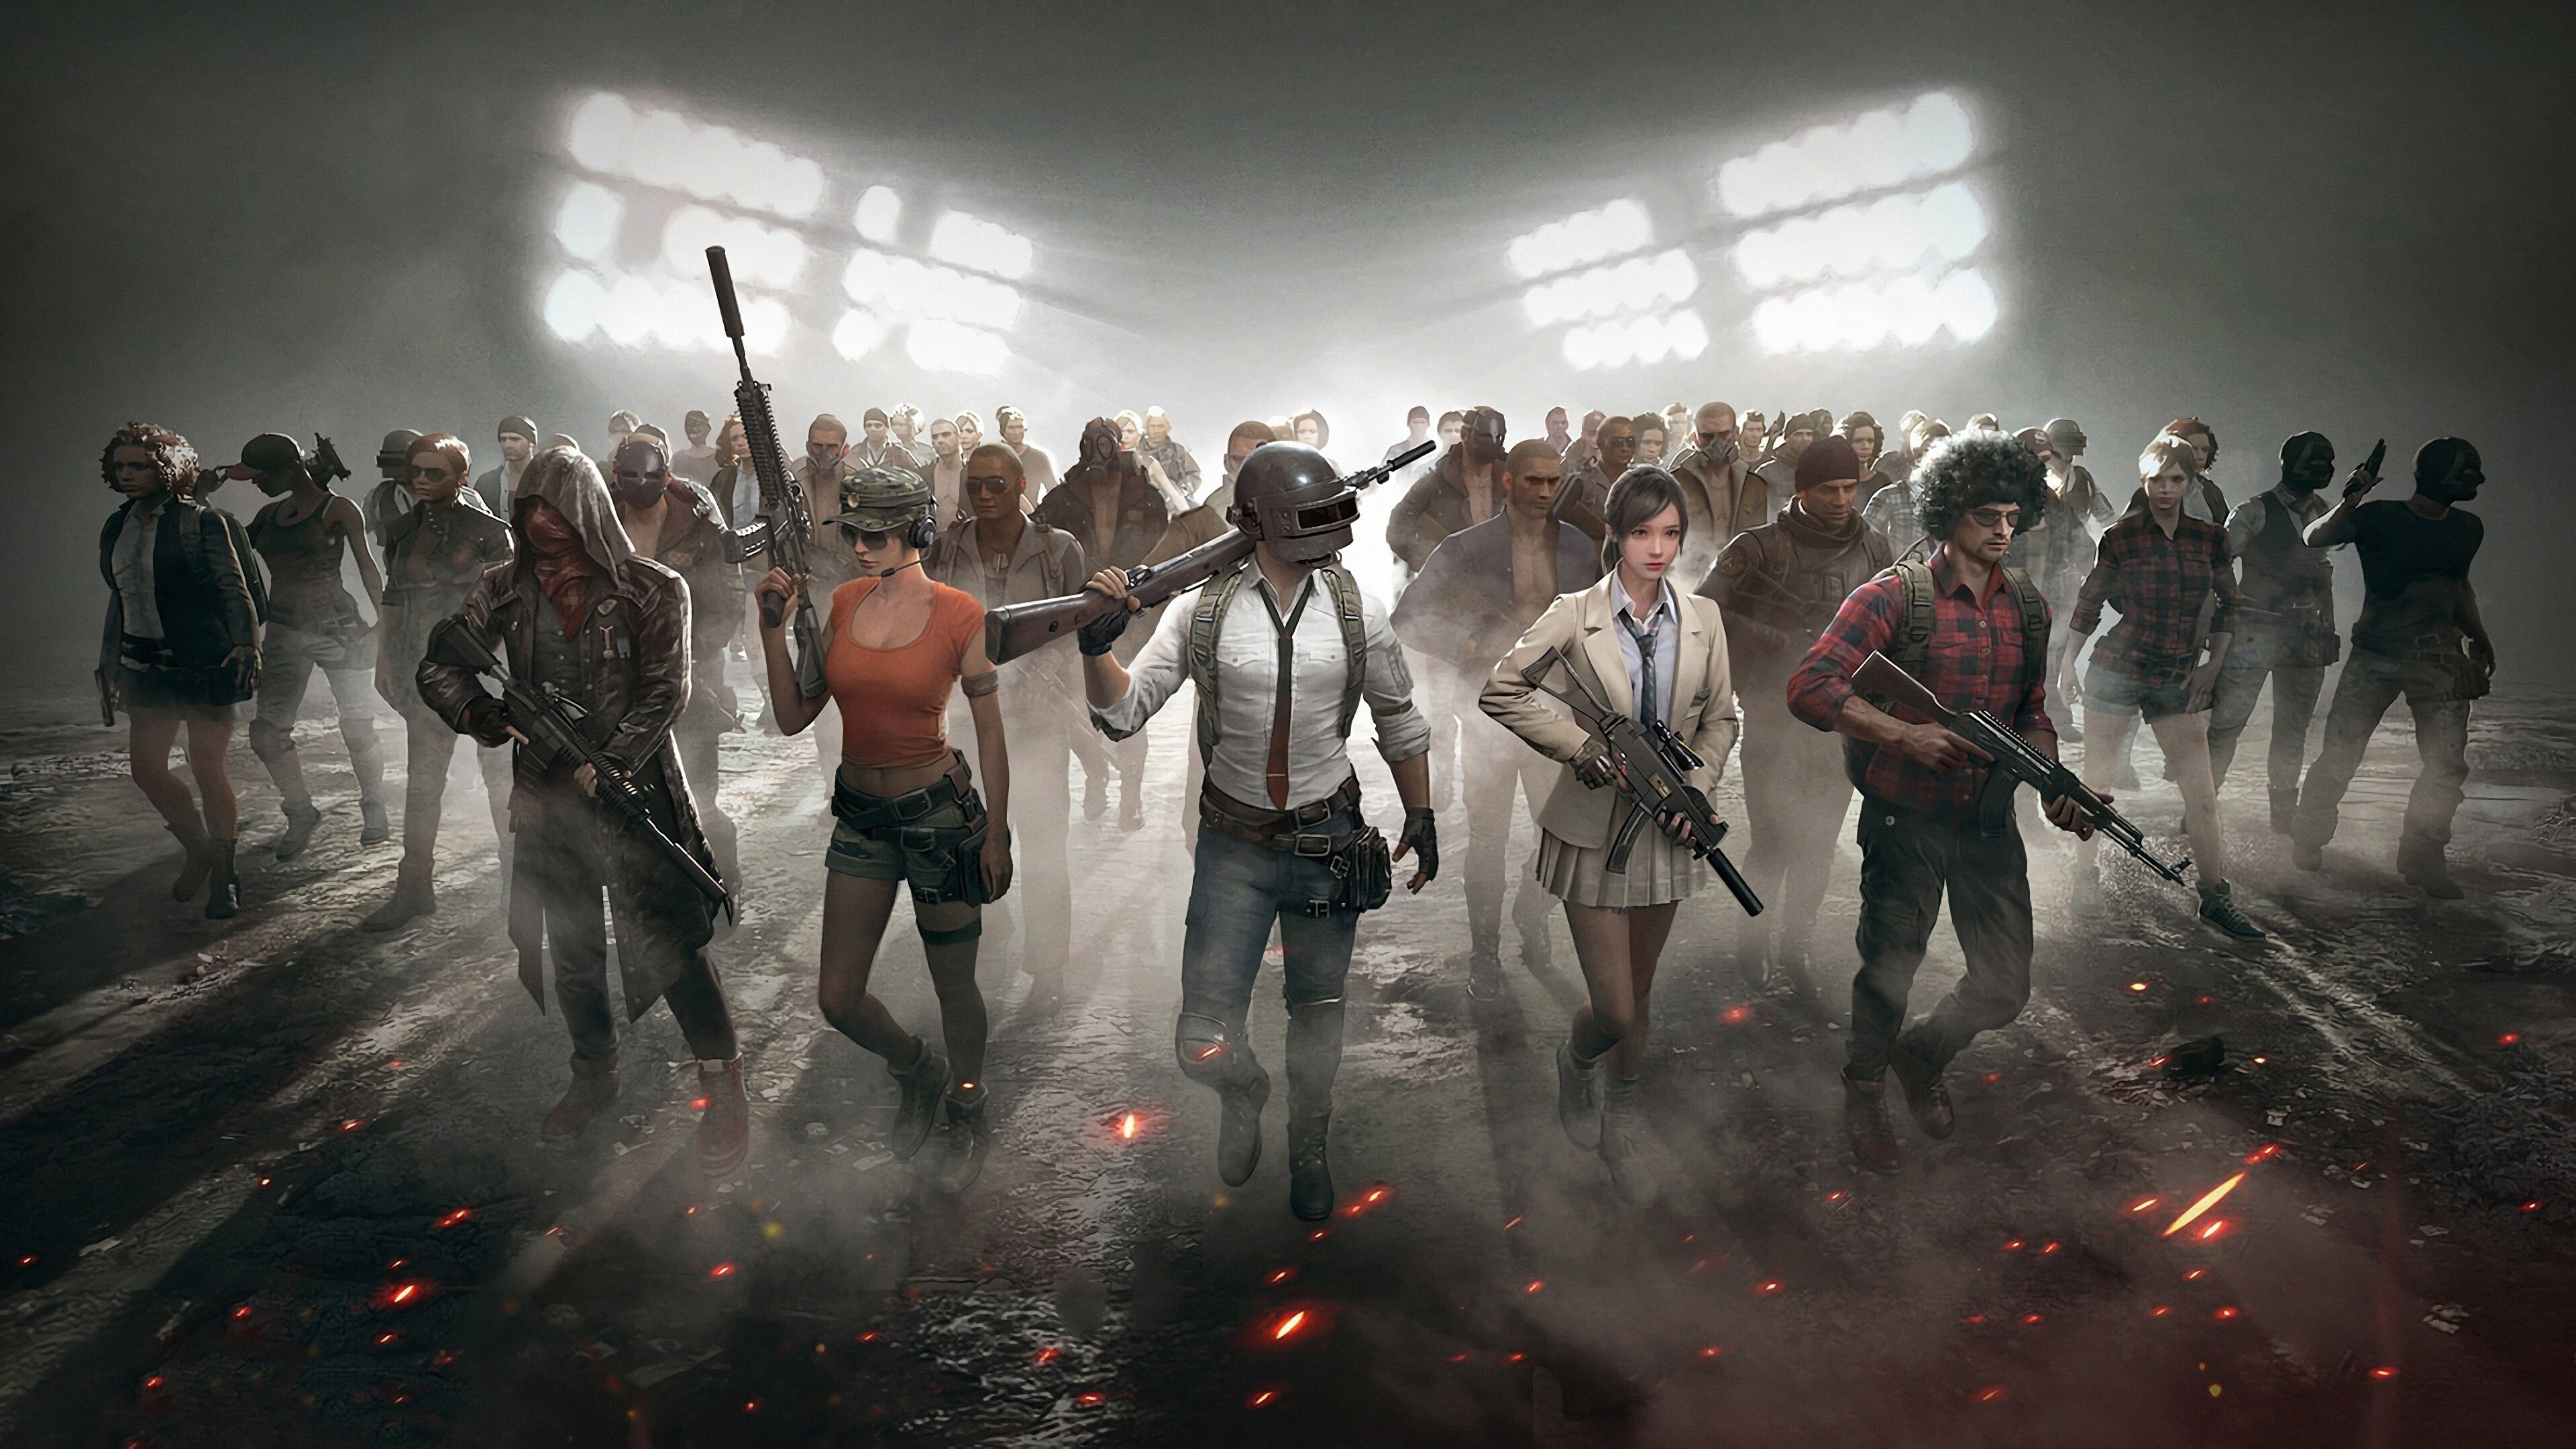 Pubg Game Hd Wallpaper Download: Characters Of PUBG Game